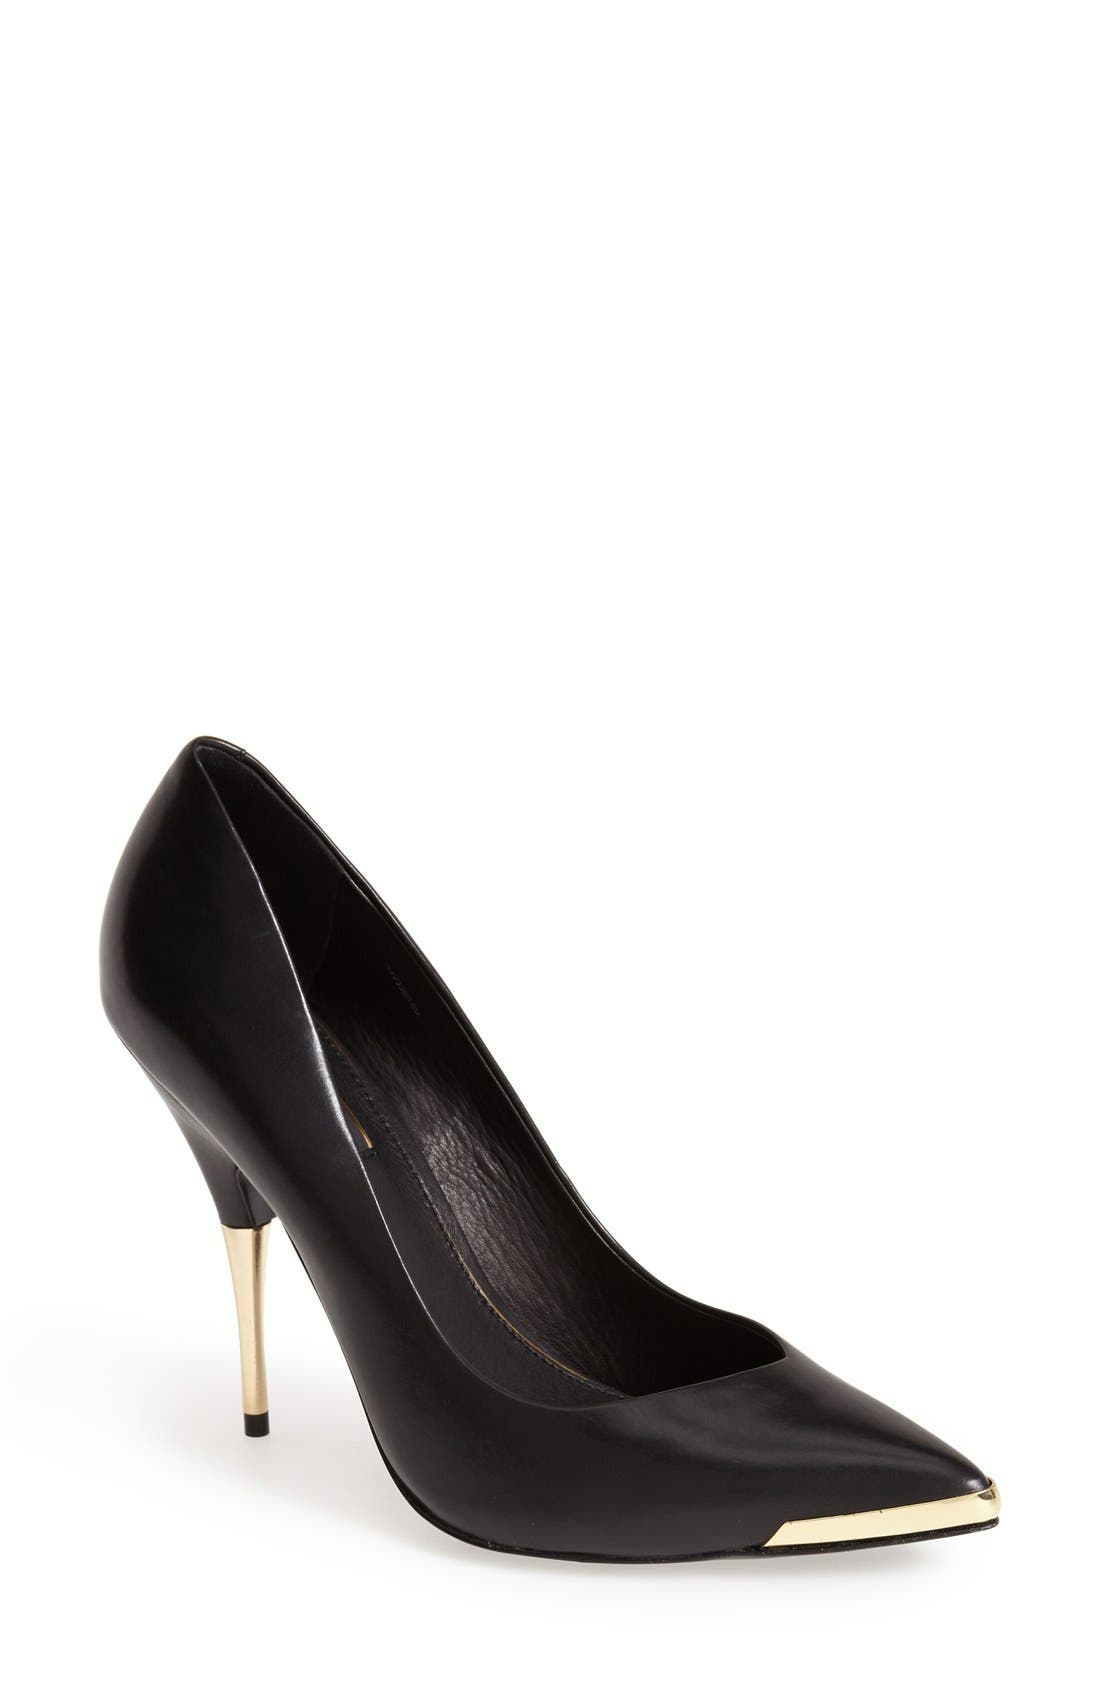 Alternate Image 1 Selected - Rachel Zoe 'Carina' Leather Pointy Toe Pump (Women)